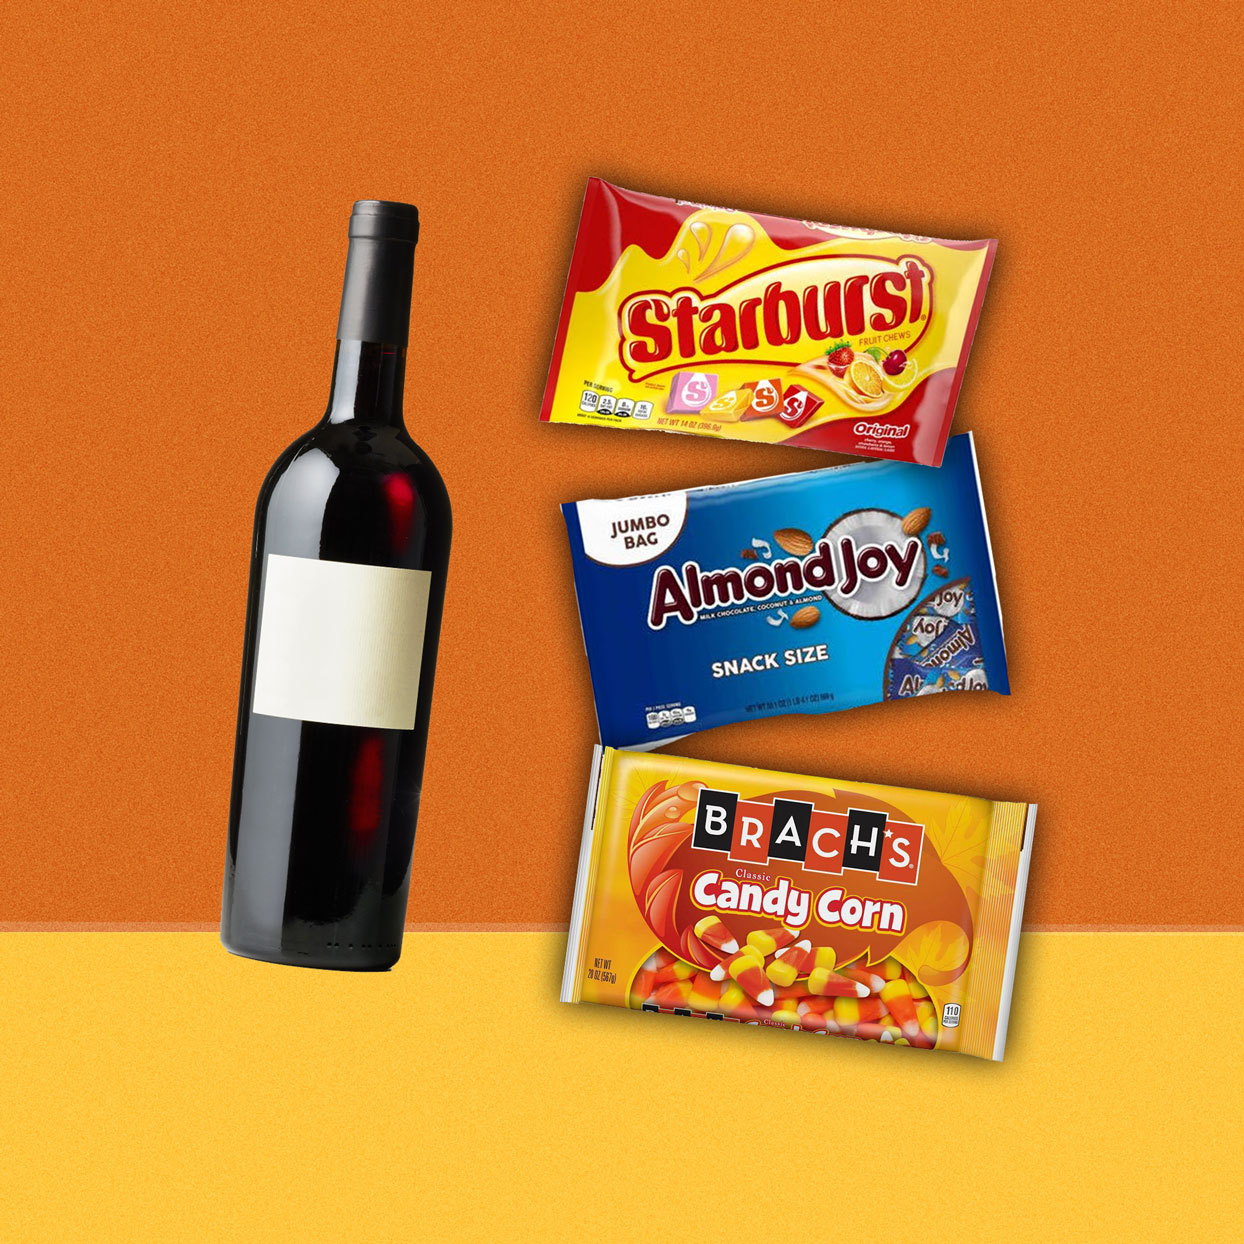 bottle of wine next to box of Starburst, Almond Joy, and Candy Corn